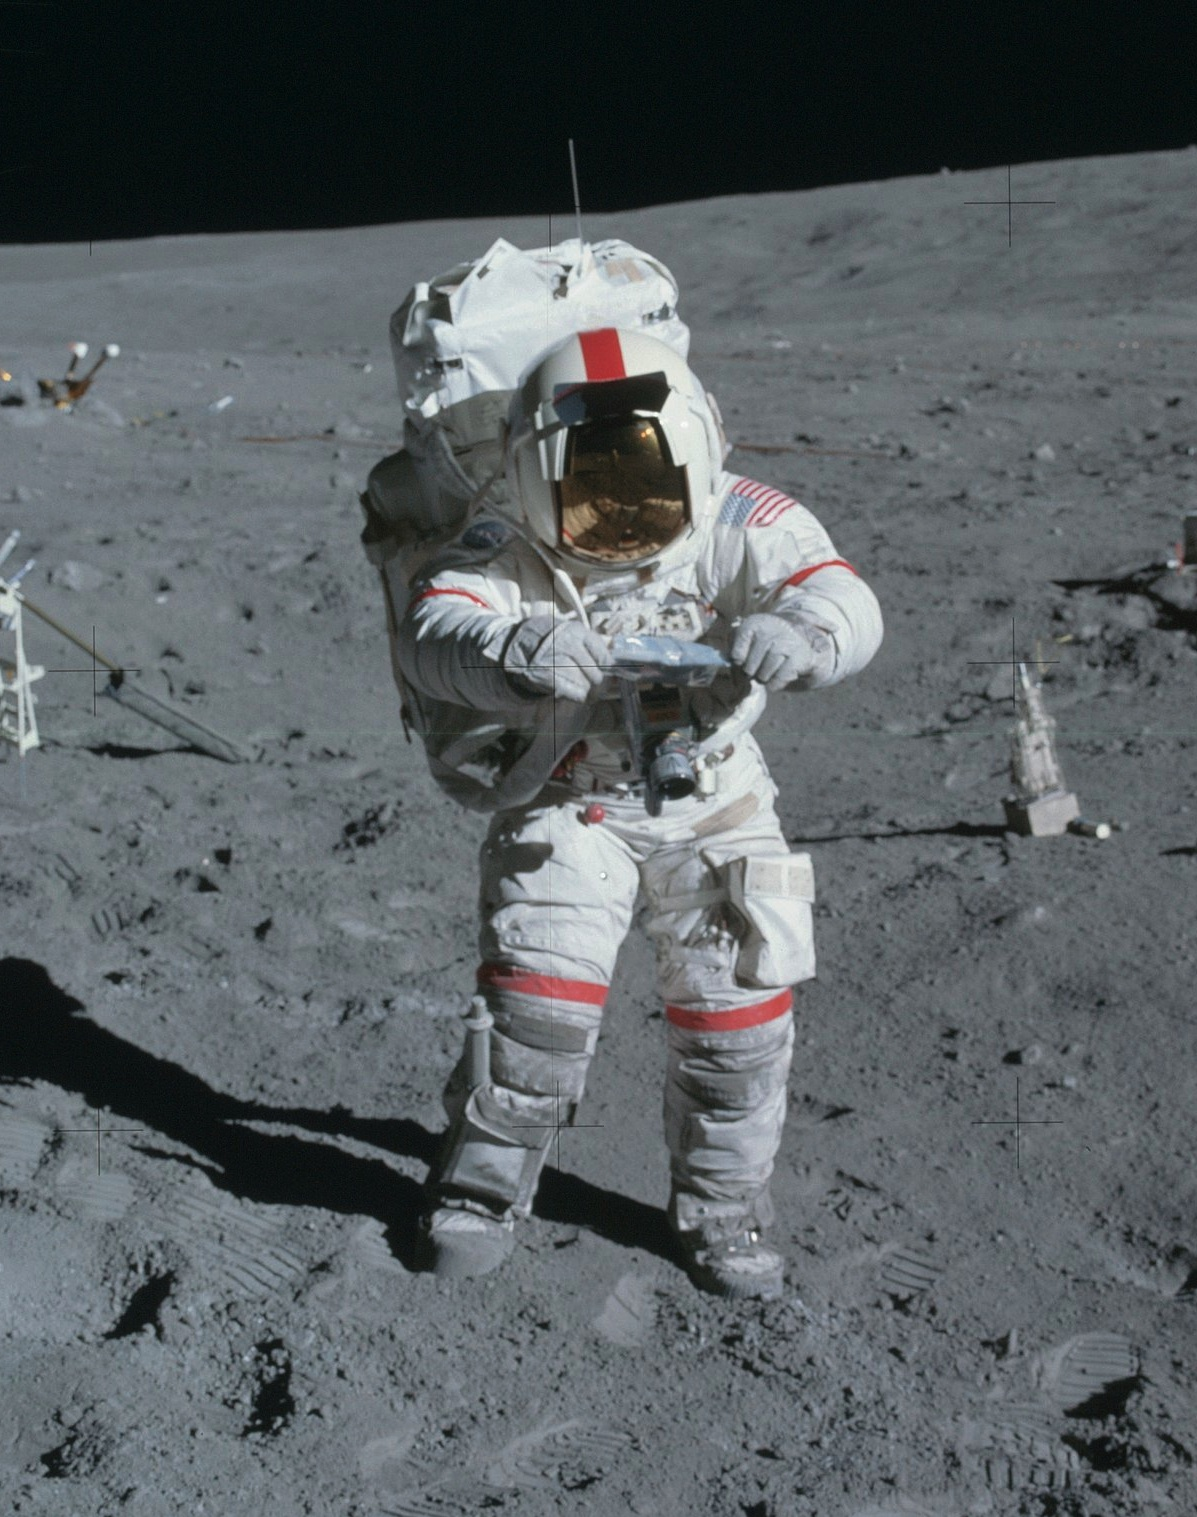 astronauts jumping on the moon - photo #25